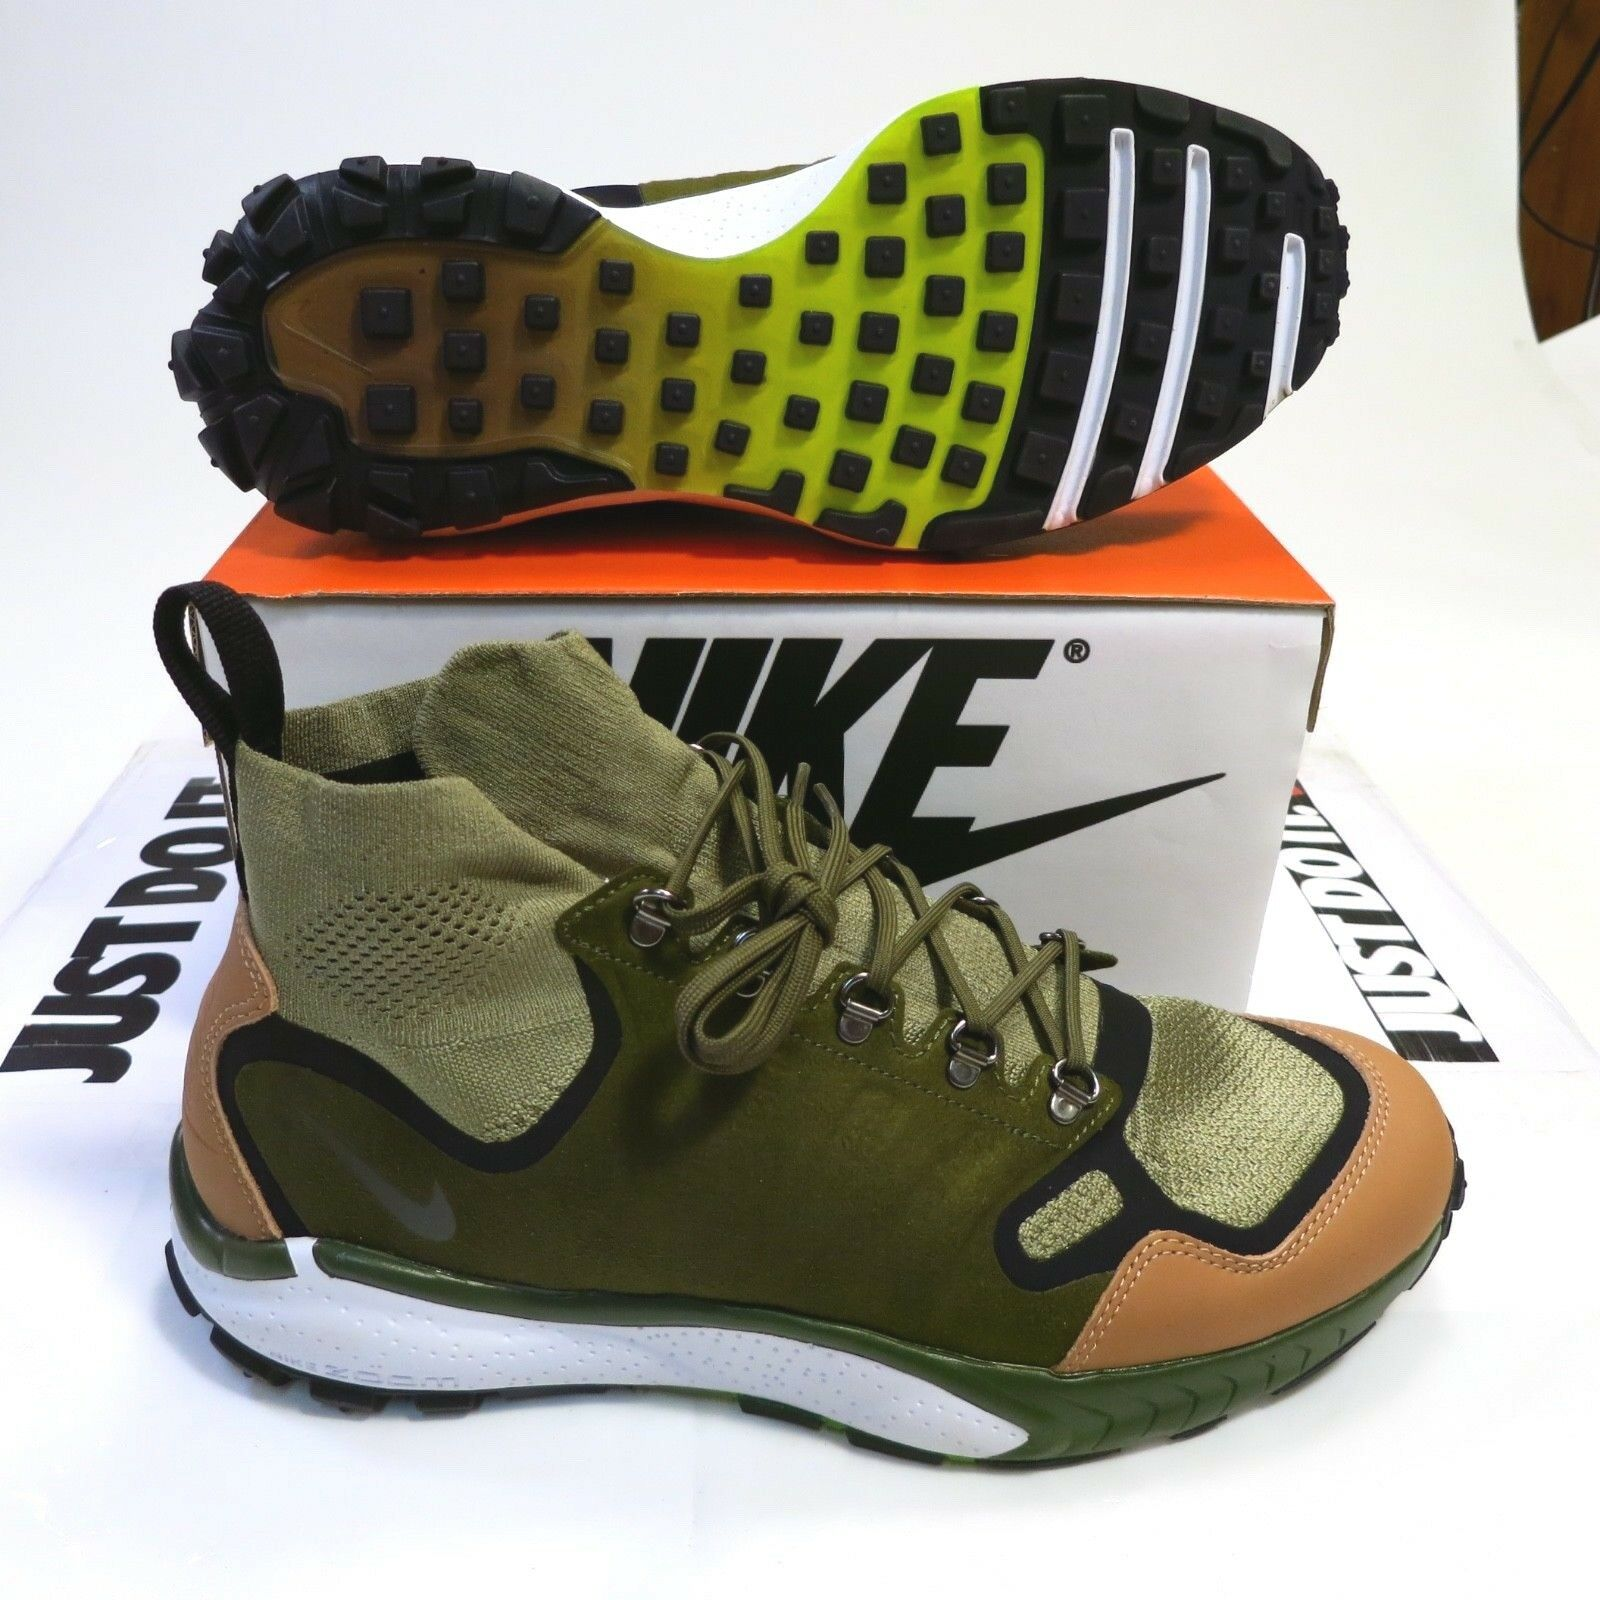 225 Men's Nike Nike Nike Air Zoom Talaria Mid FK PRM Size 11.5 Style 875784 001 NEW 48fe8f